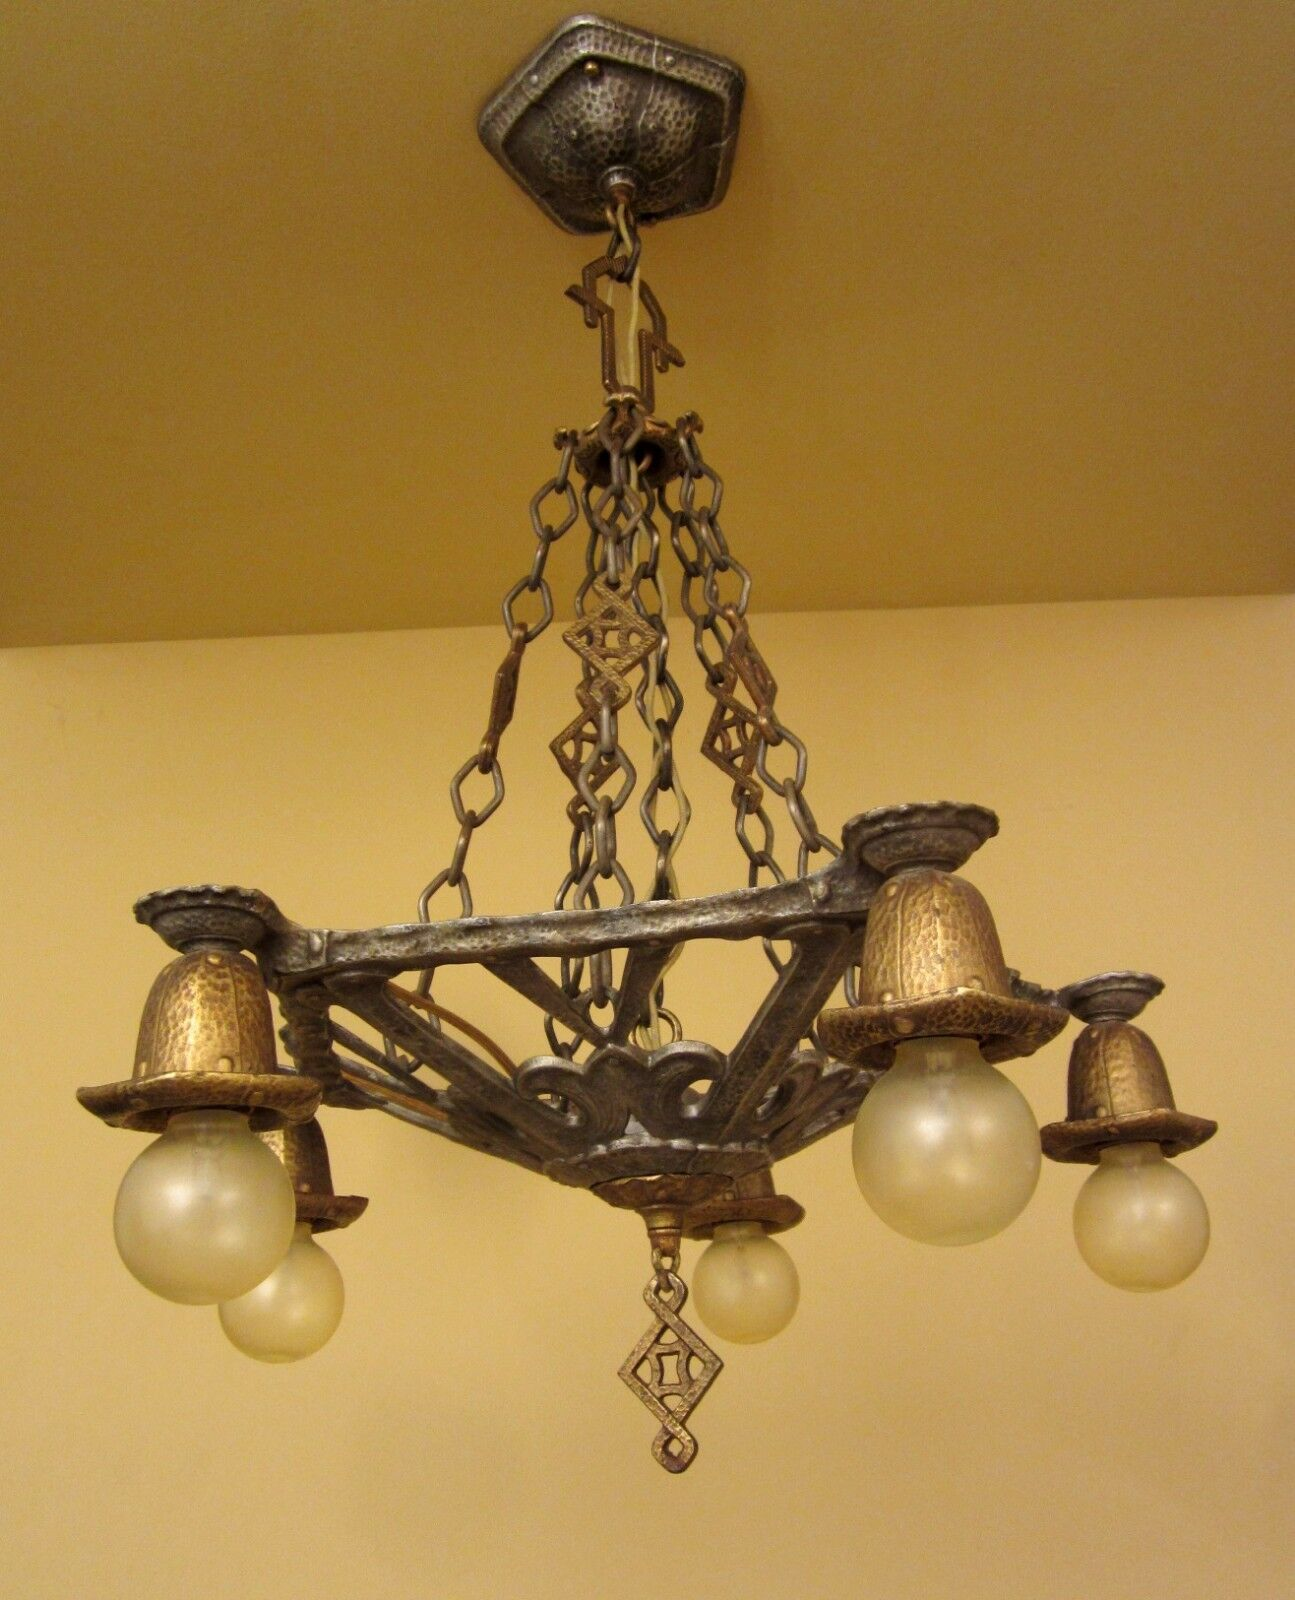 Vintage lighting circa 1930 spanish revival chandelier for Spanish revival lighting